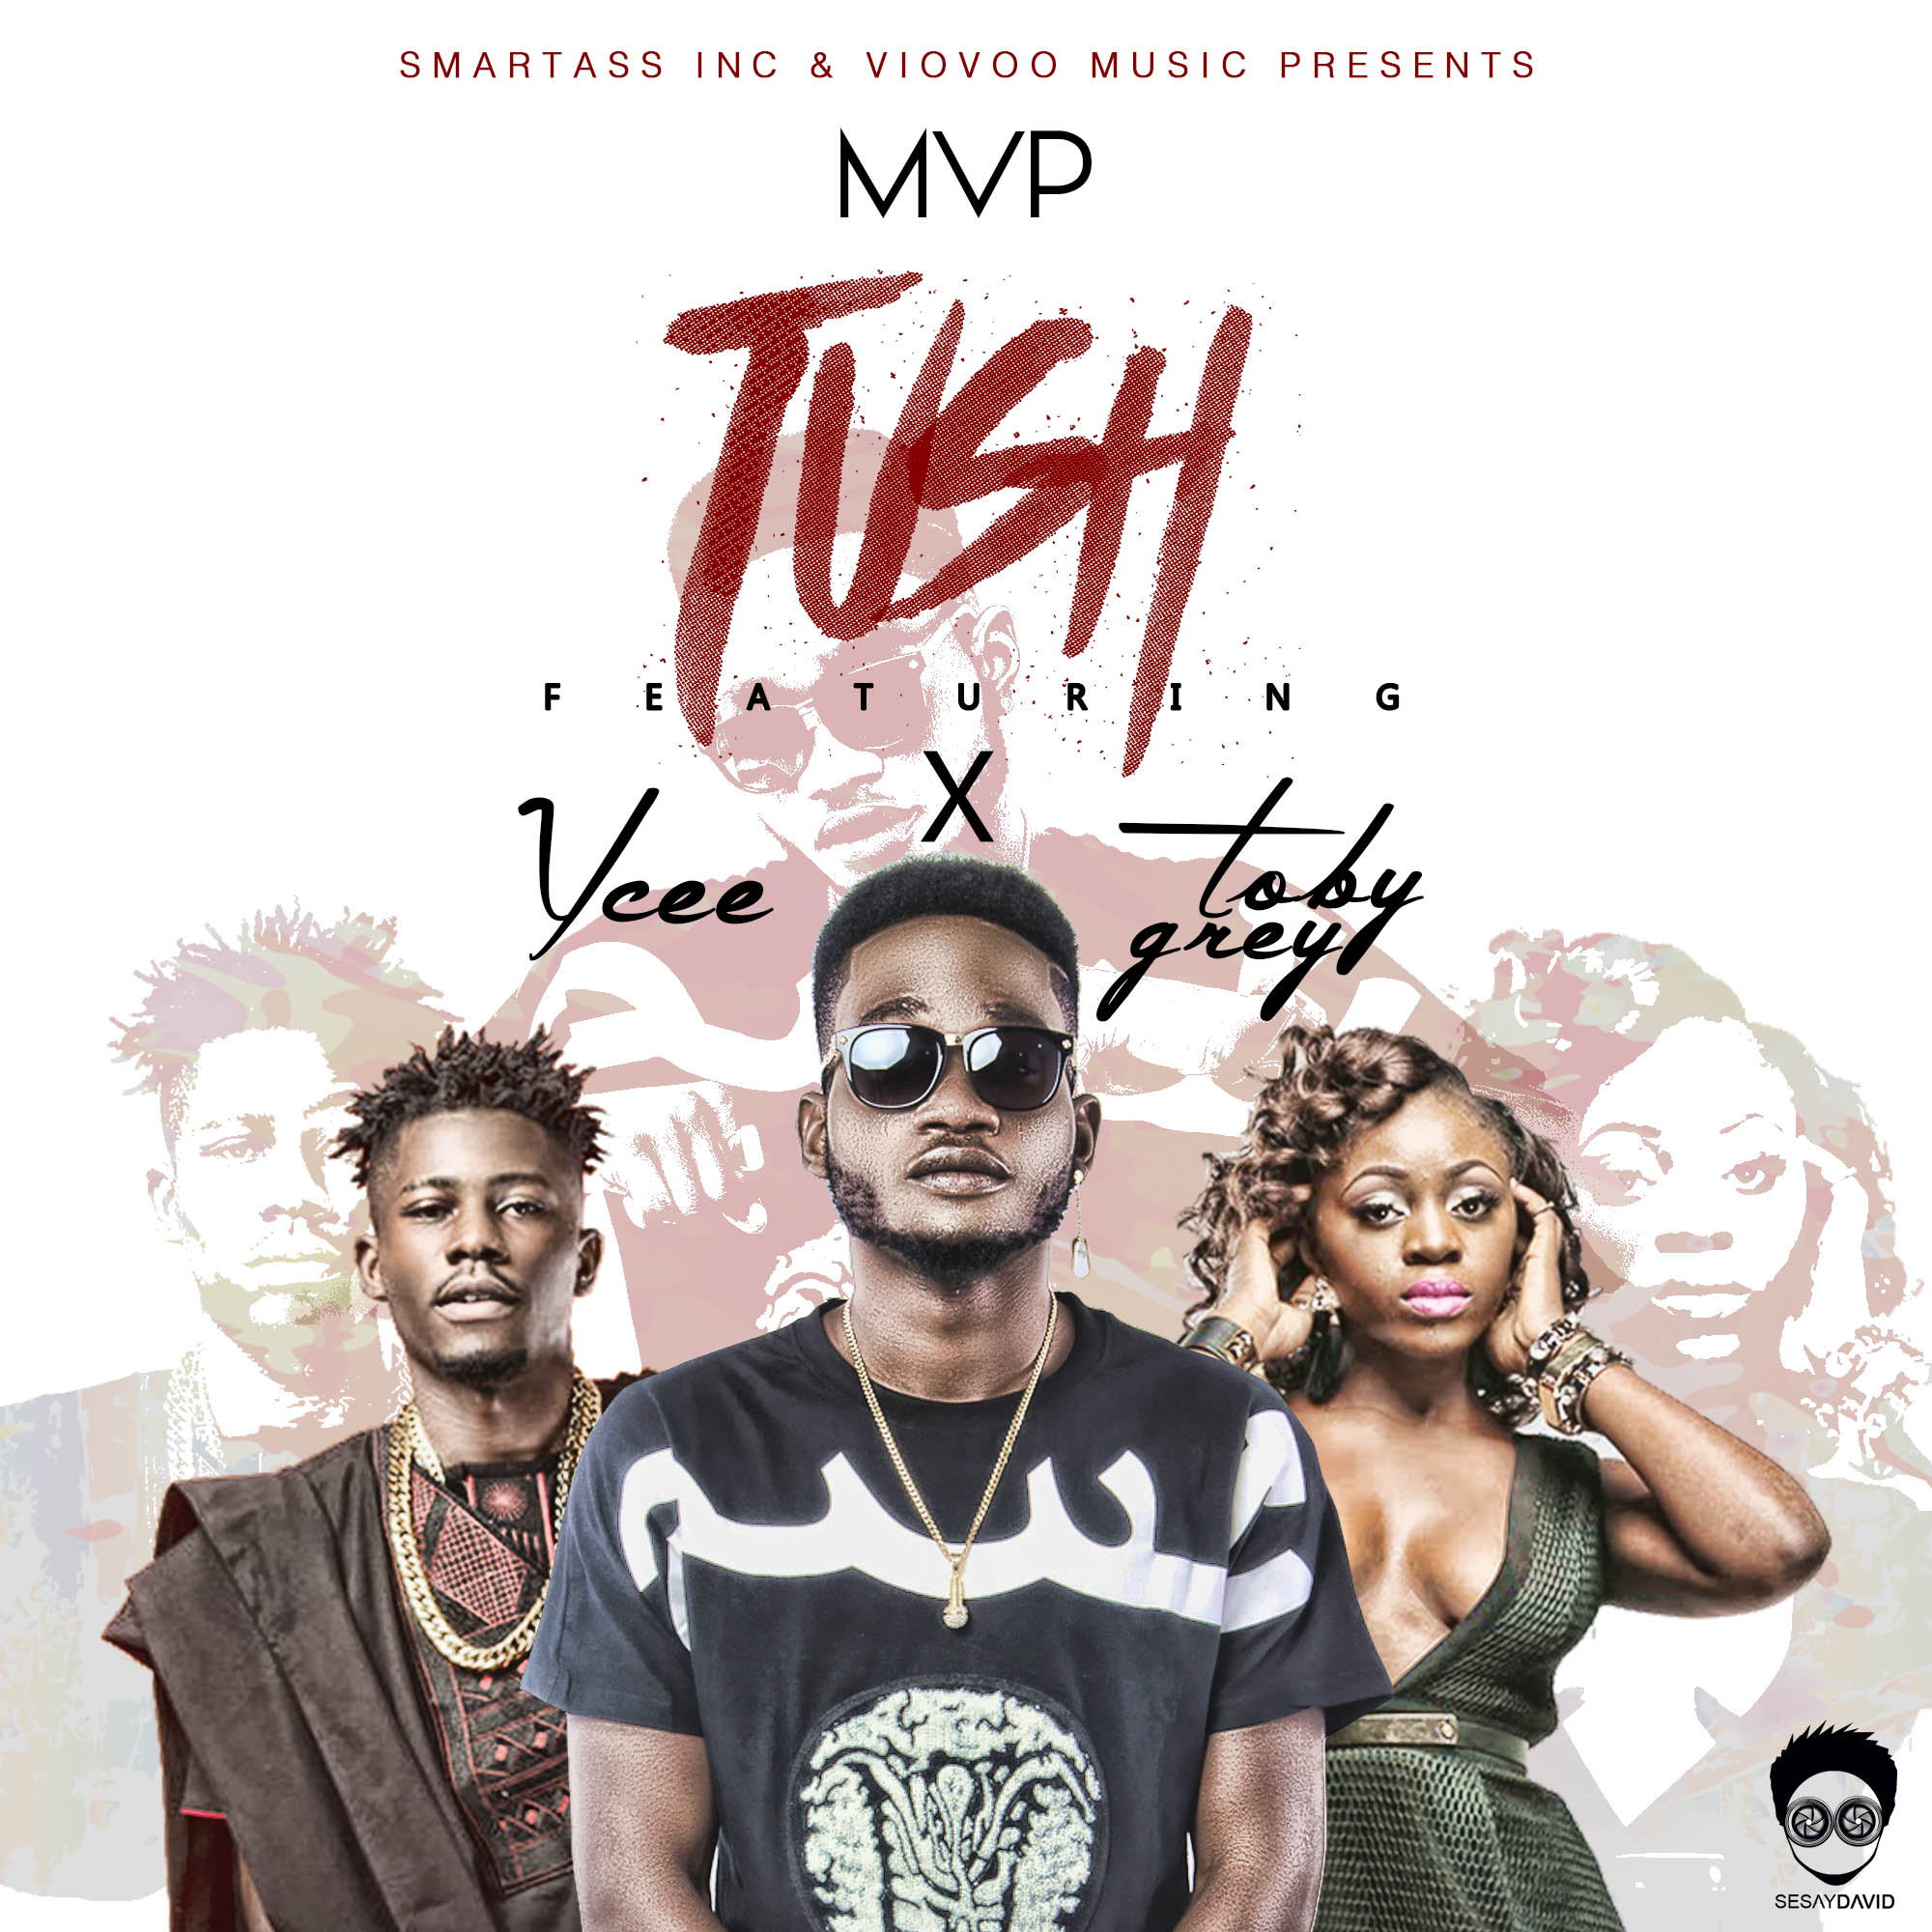 VIDEO: MVP - Tush ft. Toby Grey X YCee